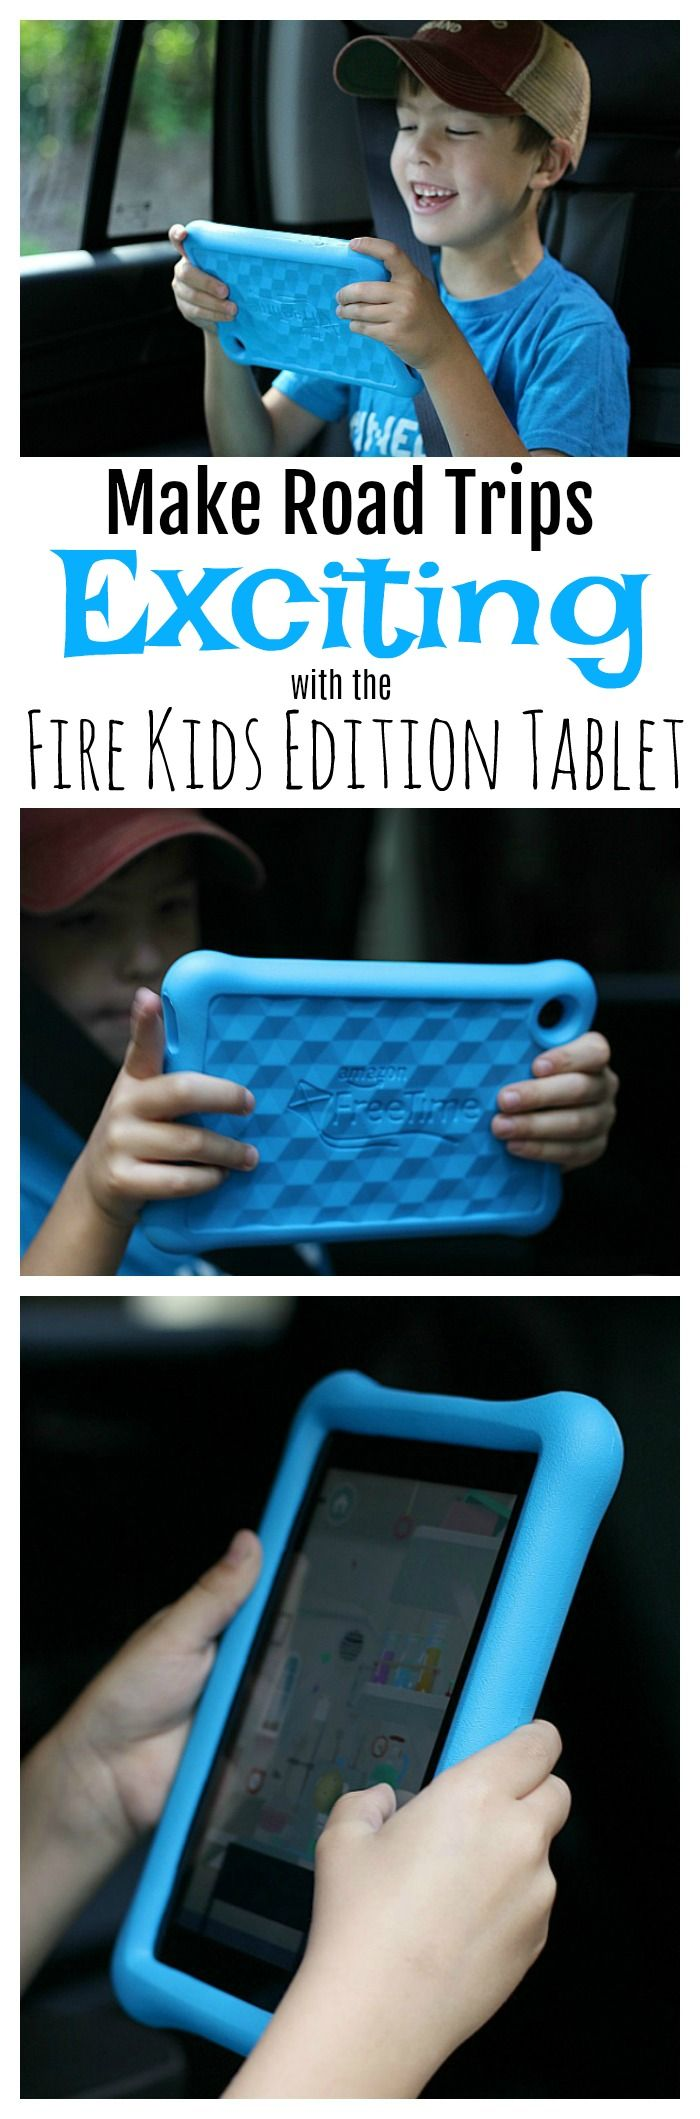 Road trips zoom by when you've got the entertaining and educational library of 10,000 books, apps/games and movies that the @amazon Fire Kids Edition Tablet provides! Find out more and learn how to get your own for less with our 20% off  promo code! #RTfireforkids #ad